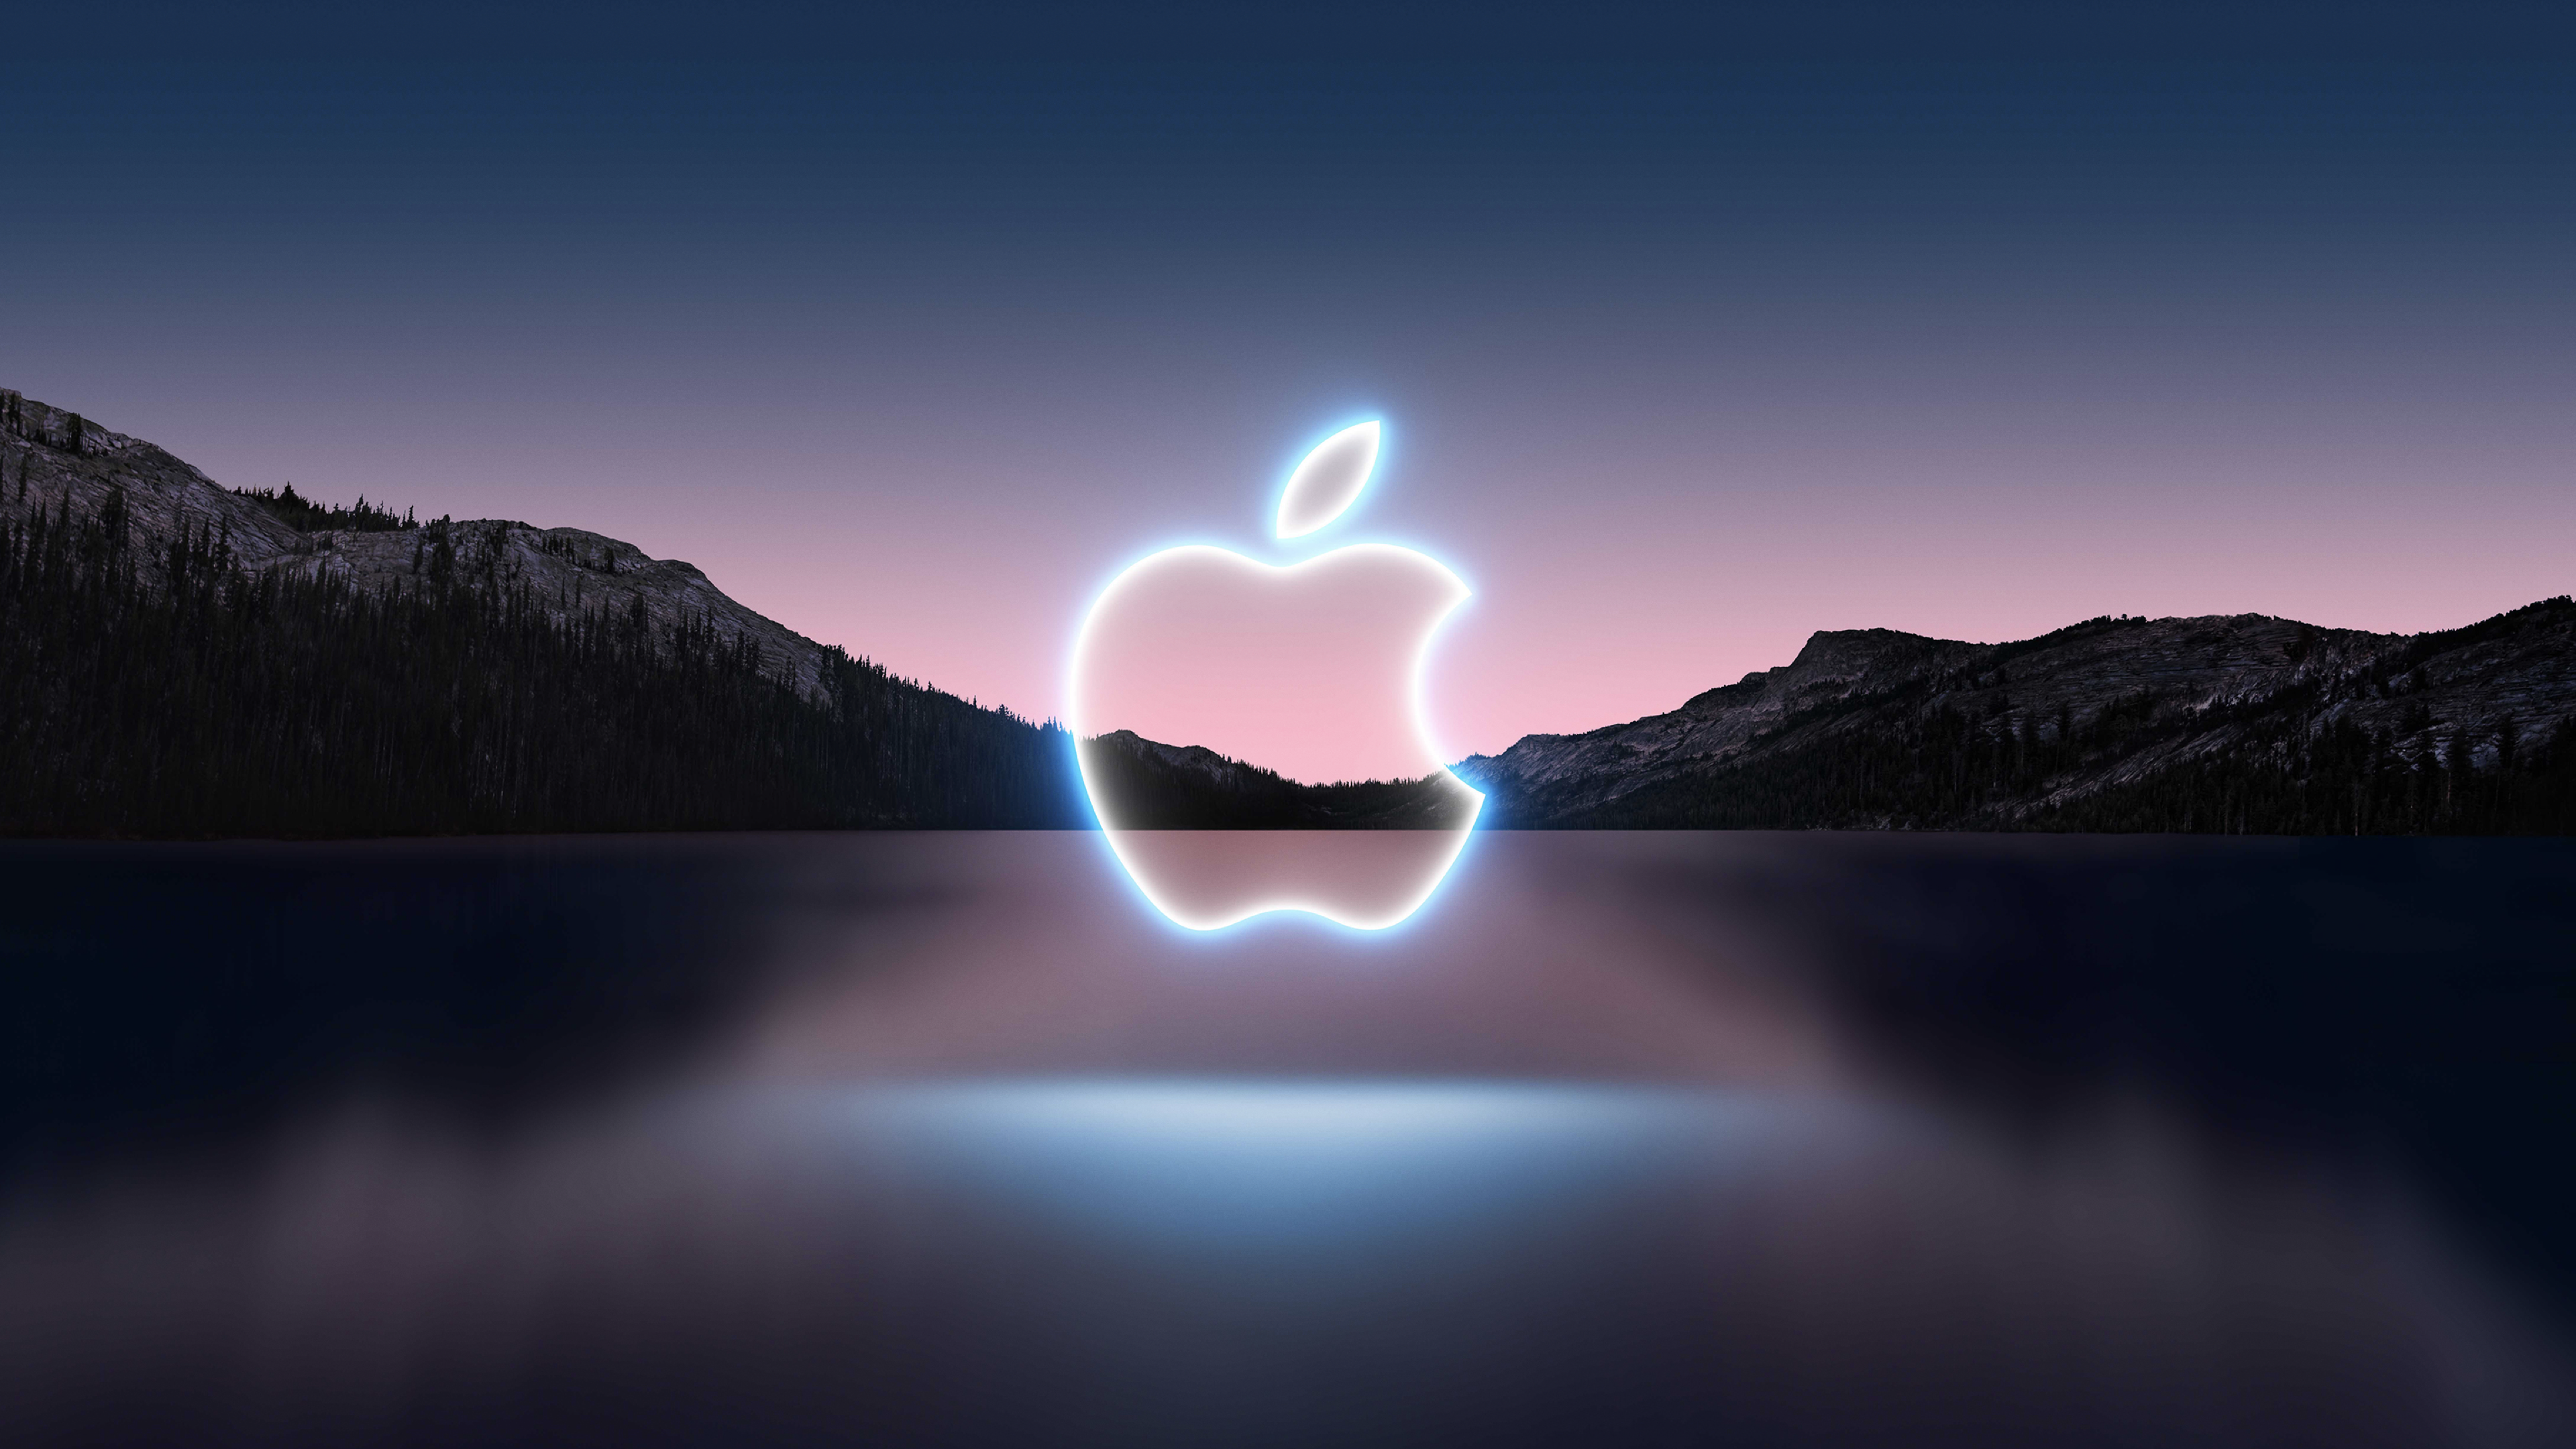 Get California streamin' with these Apple Event themed wallpapers ...